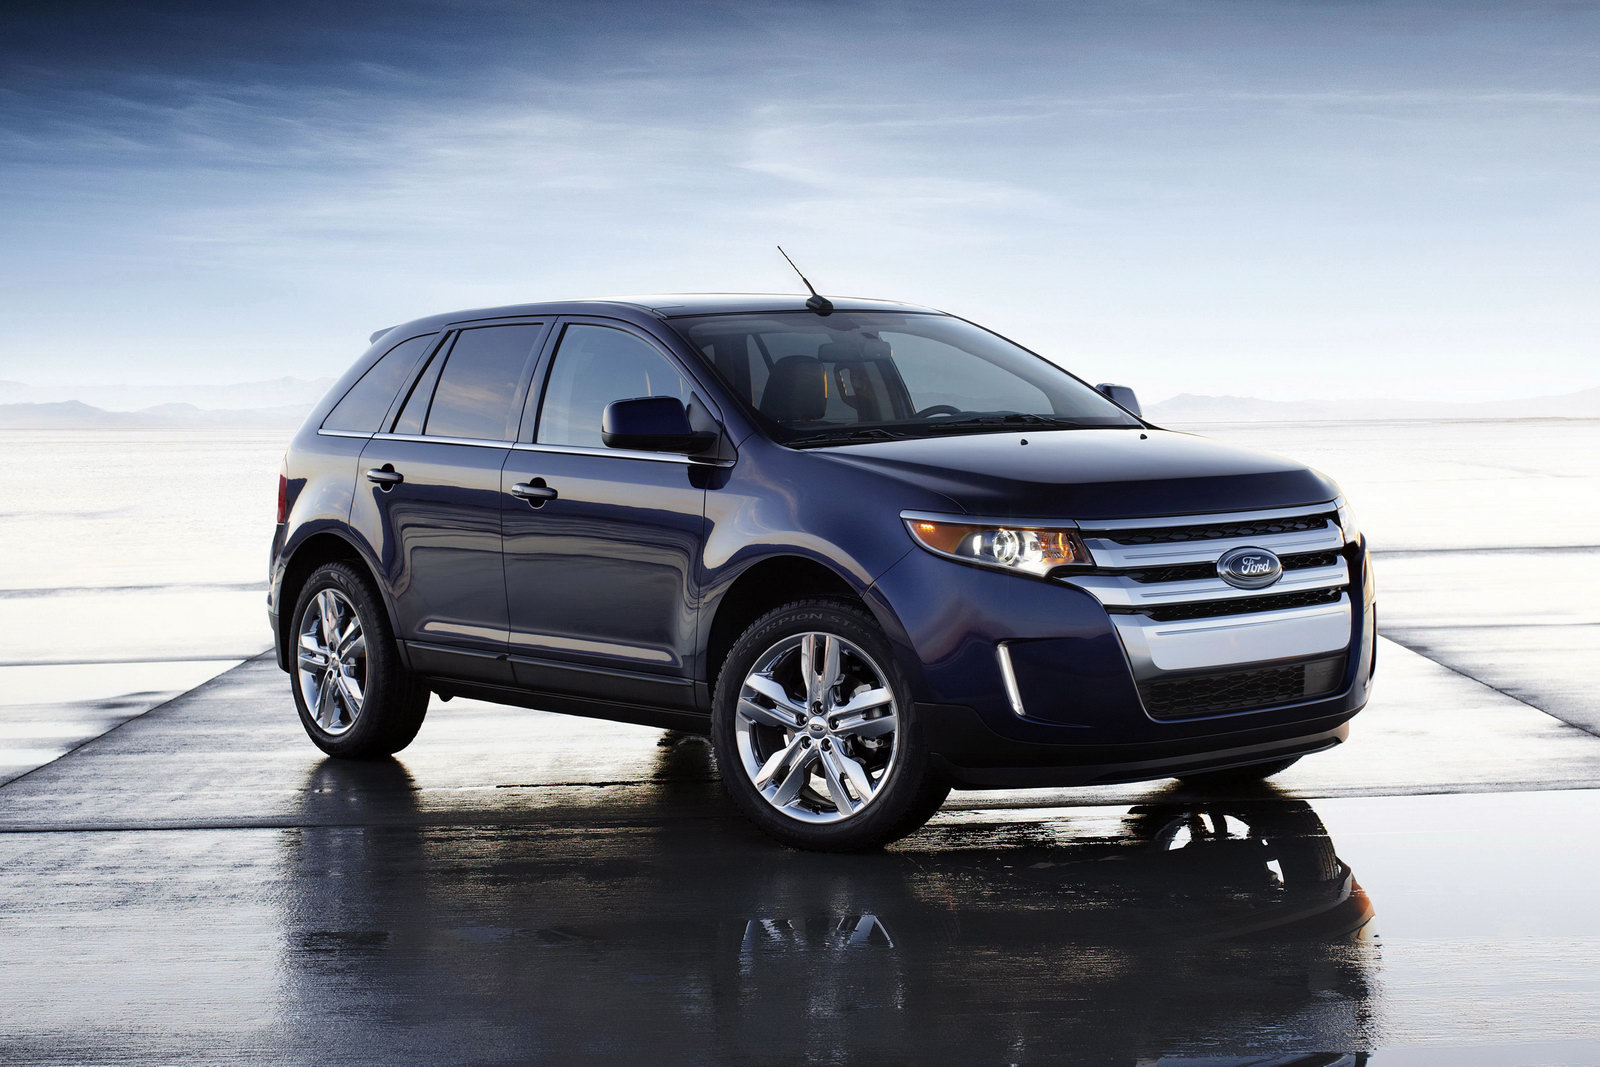 ford edge suv photos price specifications reviews. Black Bedroom Furniture Sets. Home Design Ideas